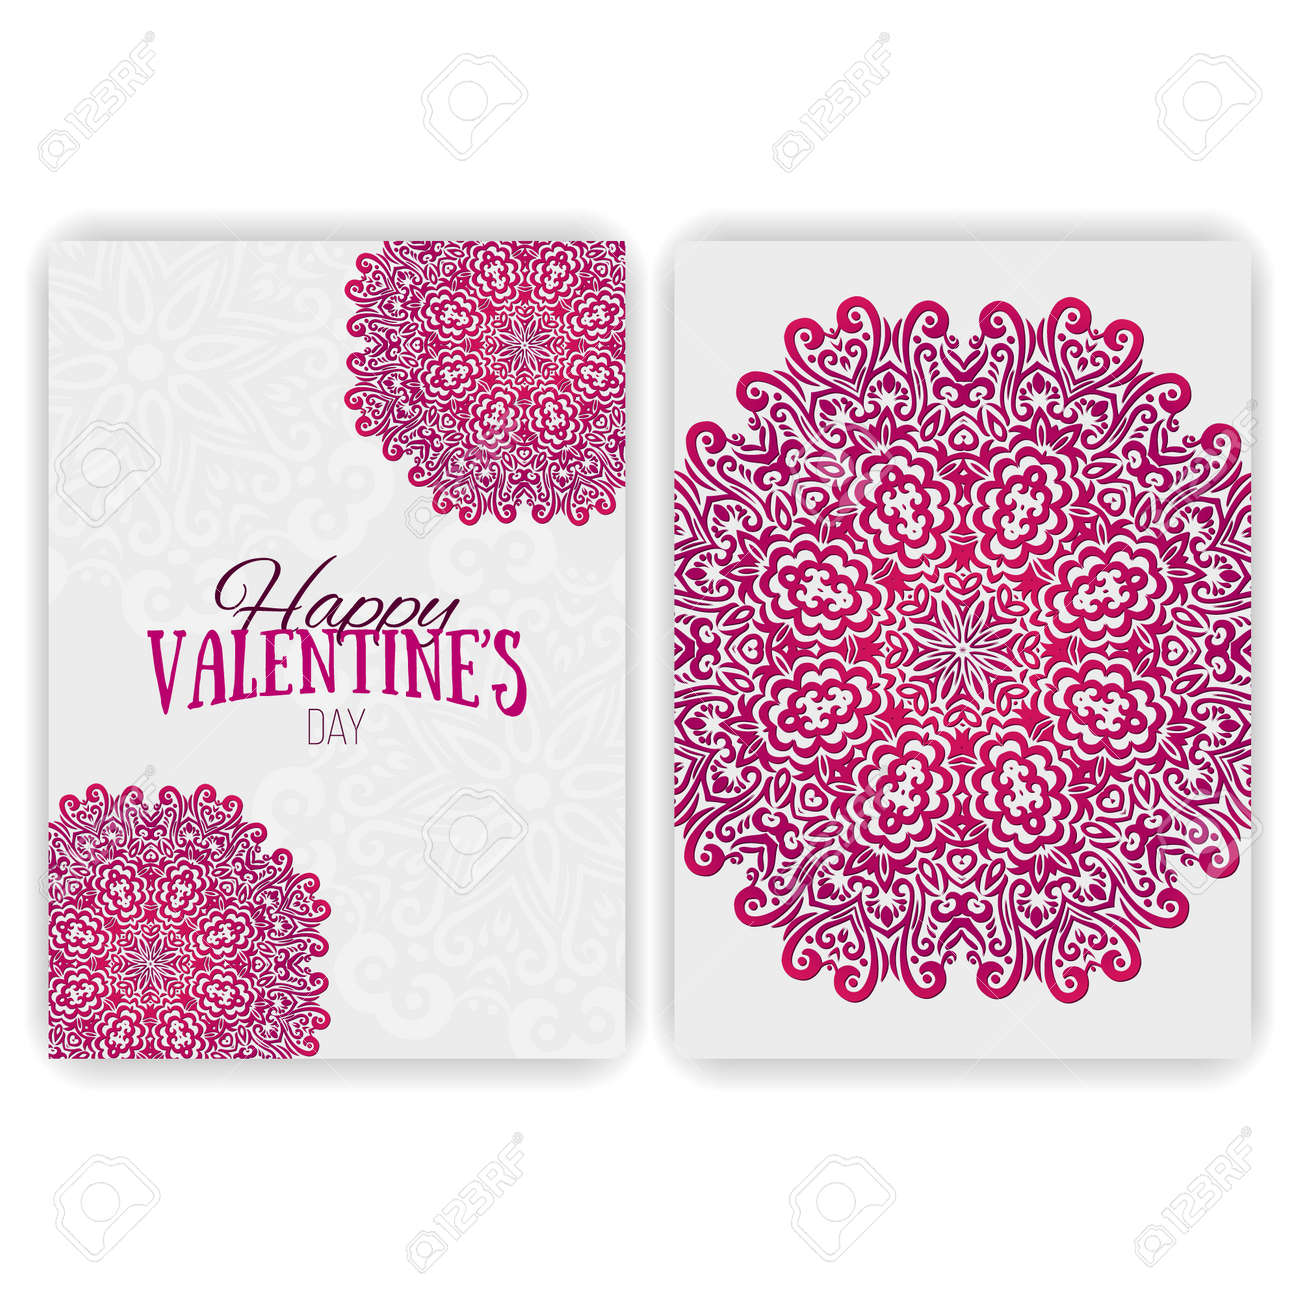 Valentines Day Card Template Lacy Romantic Indian Style – Valentines Day Cards Template